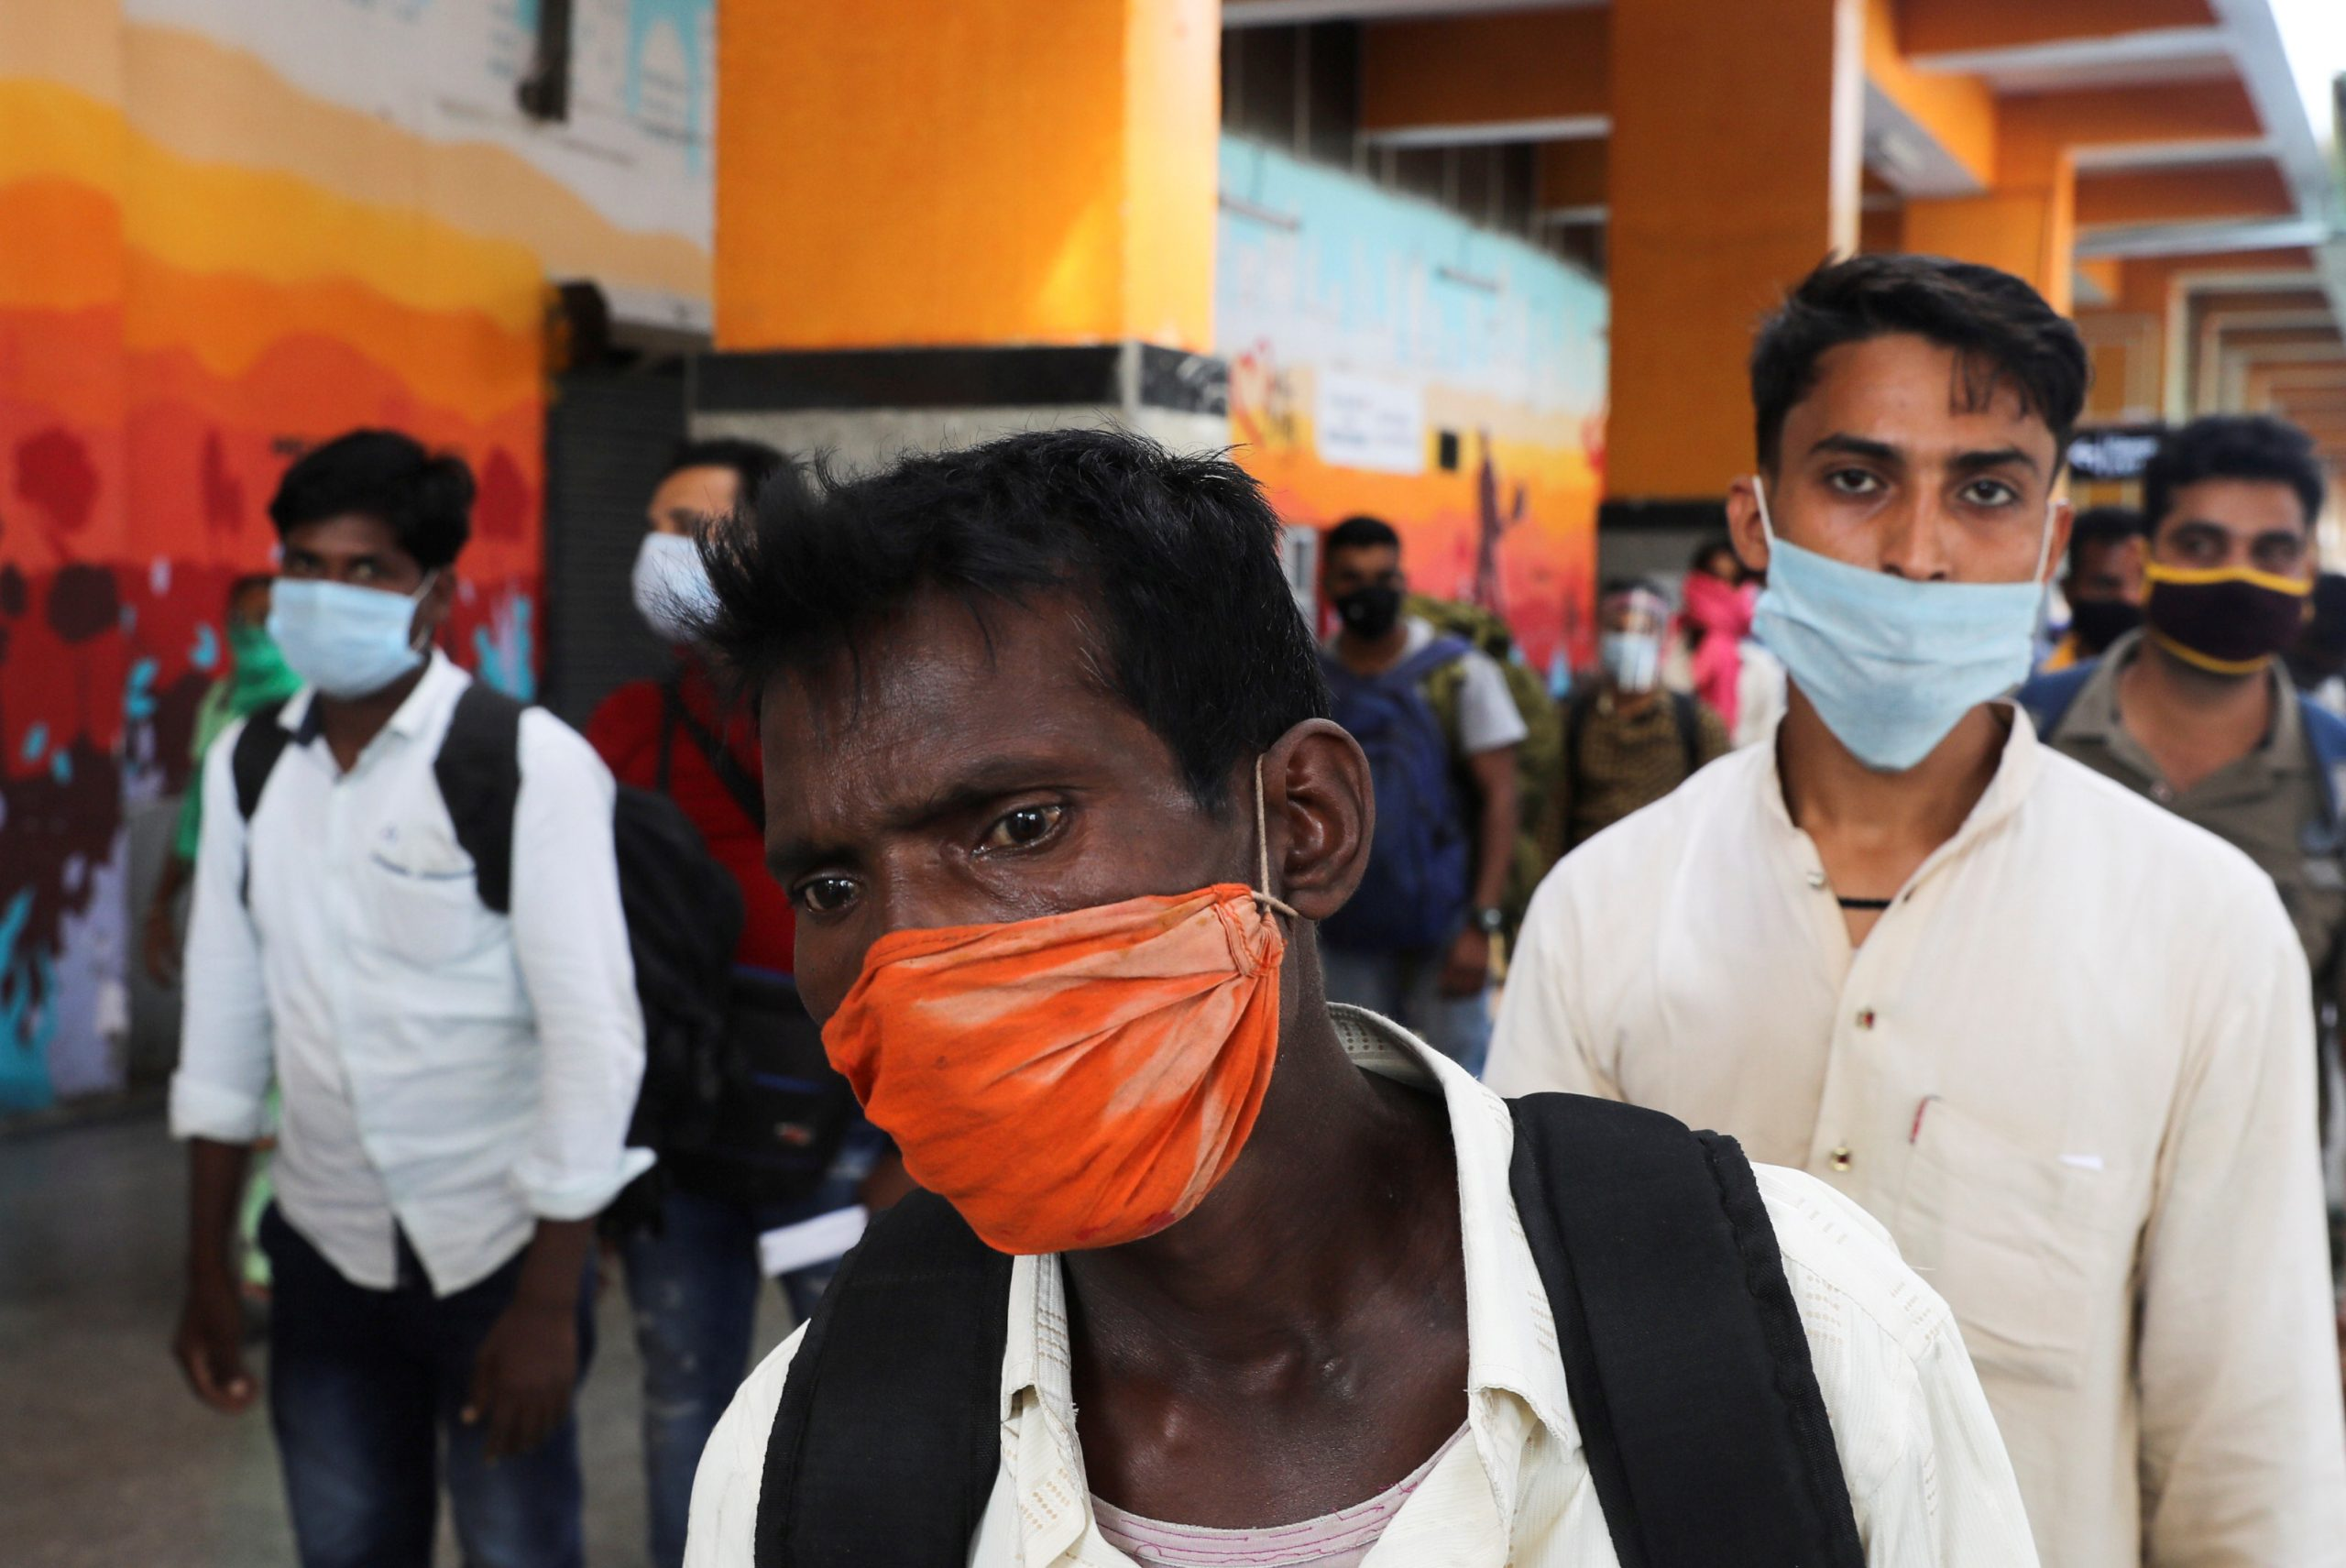 Passengers wearing protective face masks stand in a queue on a platform to get tested for the coronavirus disease (COVID-19), at a railway station, in New Delhi, India, October 5, 2020. REUTERS/Anushree Fadnavis/File Photo